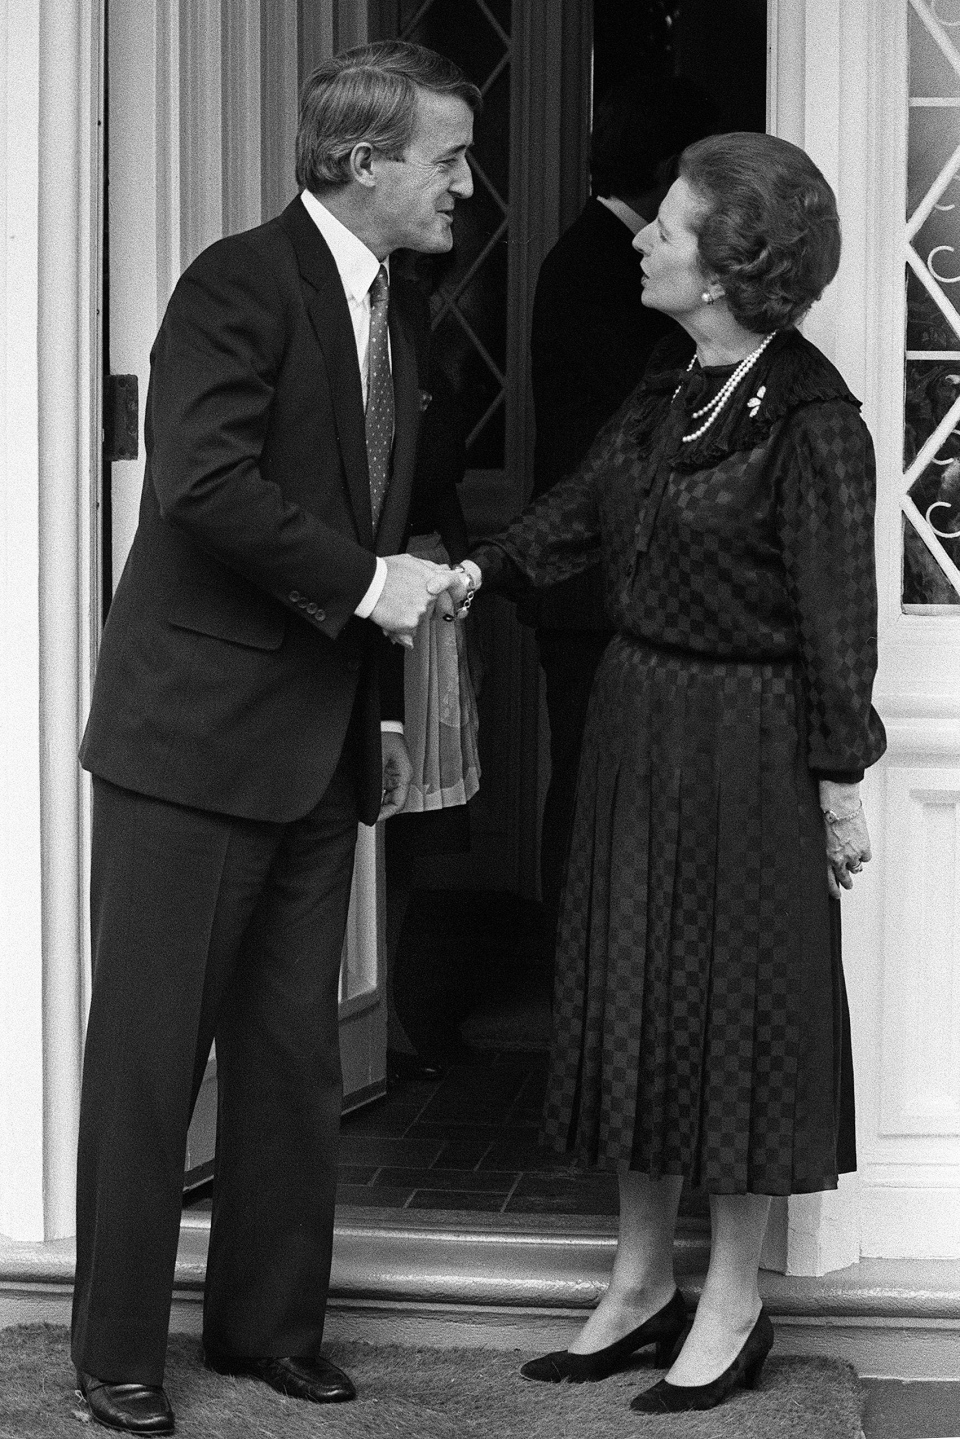 Opposition leader Brian Mulroney shakes hands with British Prime Minister Margaret Thatcher as he leaves the British High Commissioners residence in Ottawa on Sept. 26, 1983. (Ron Poling / The Canadian Press)